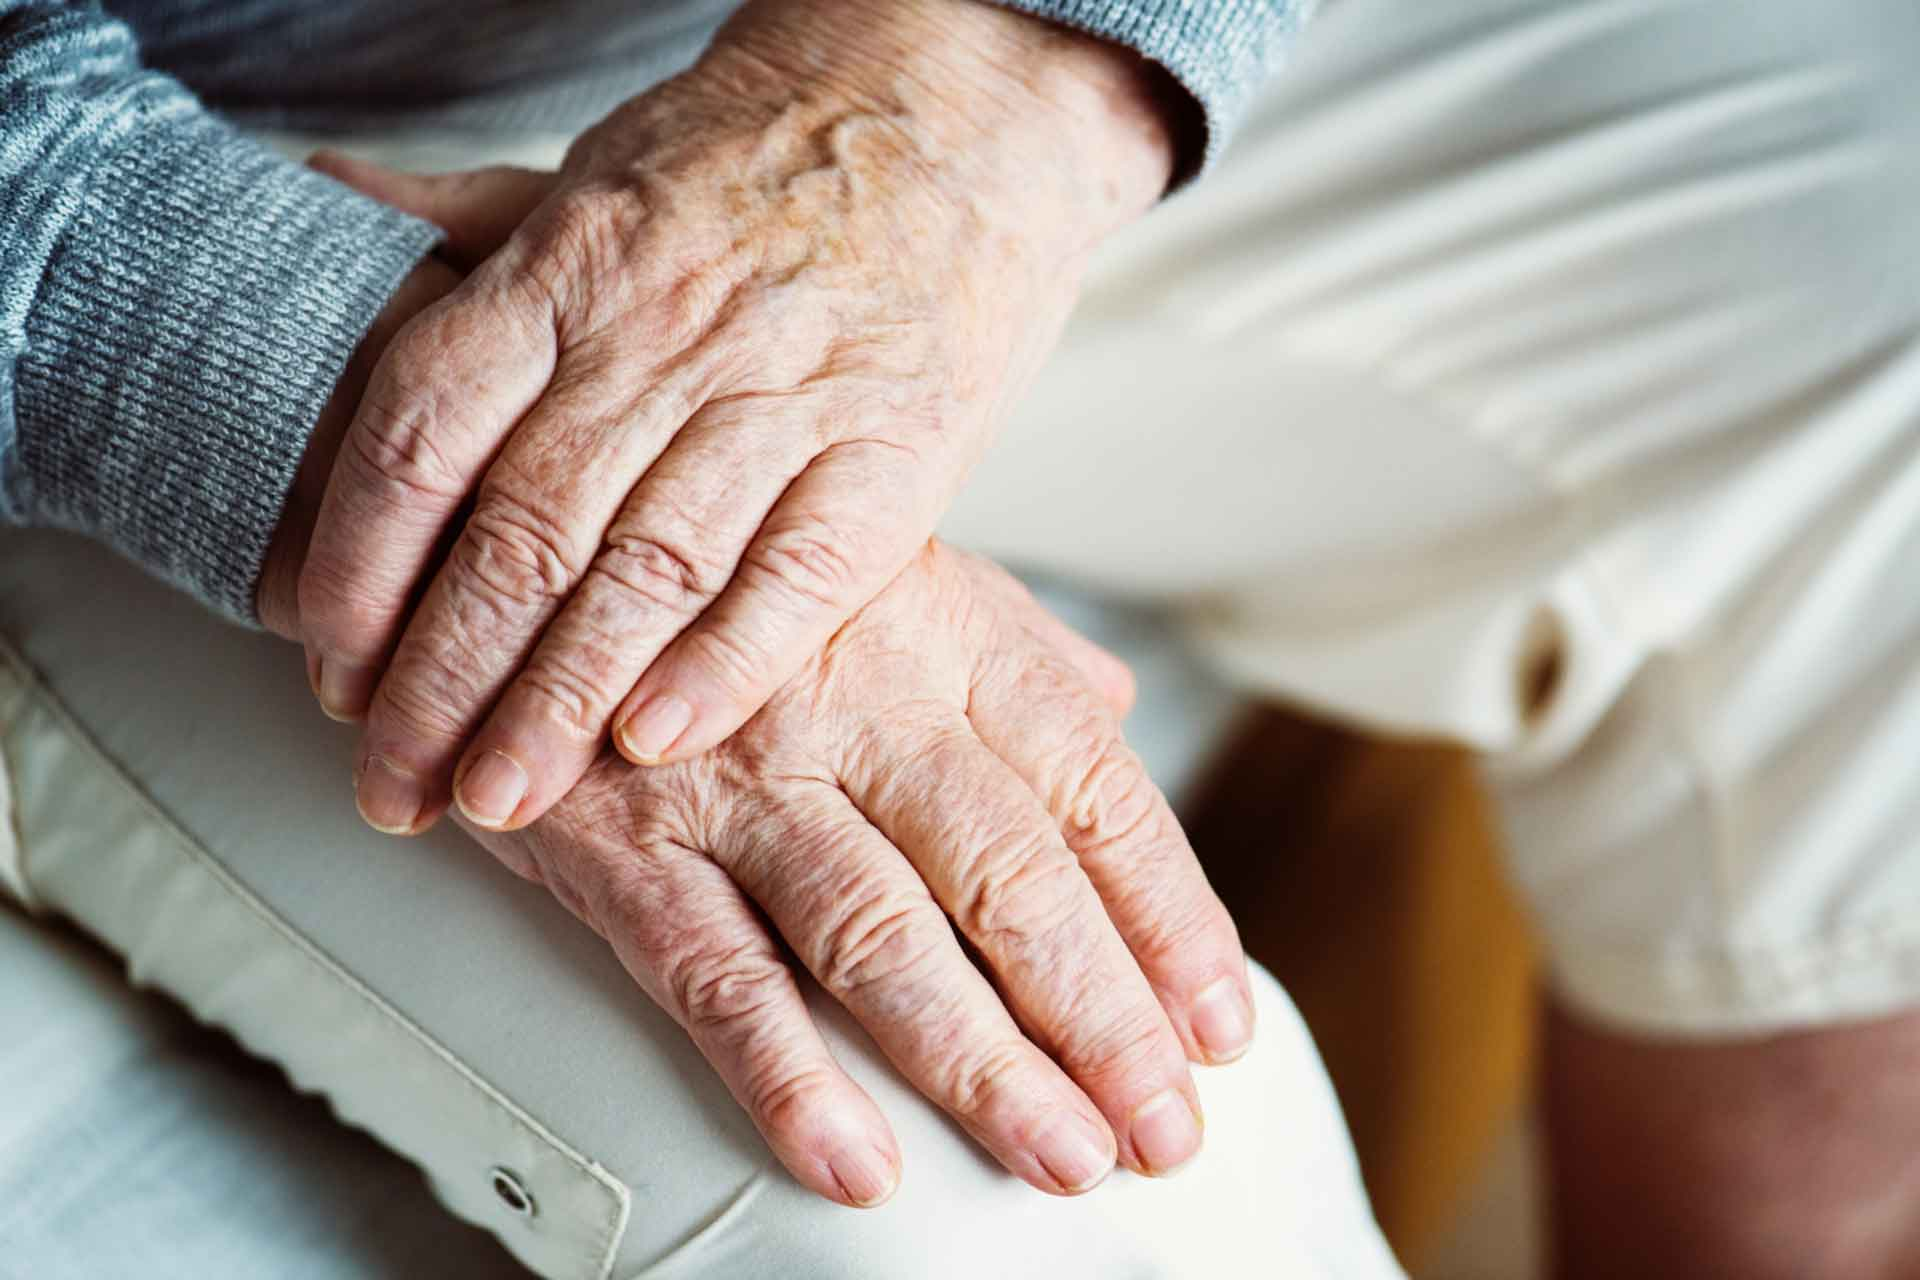 Hands of an elderly vulnerable person